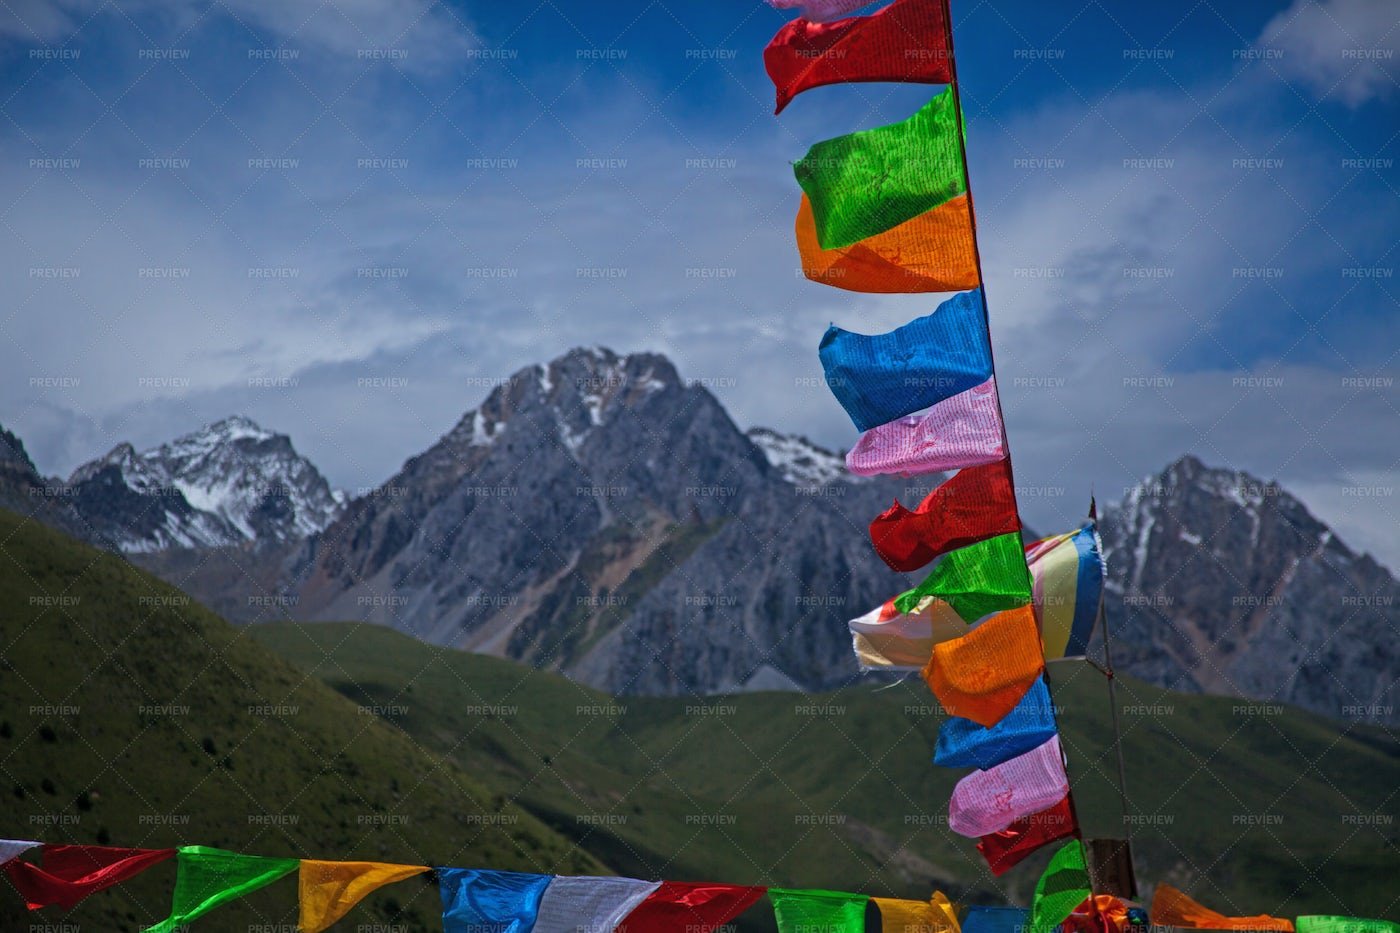 Prayer Flags In The Mountains: Stock Photos